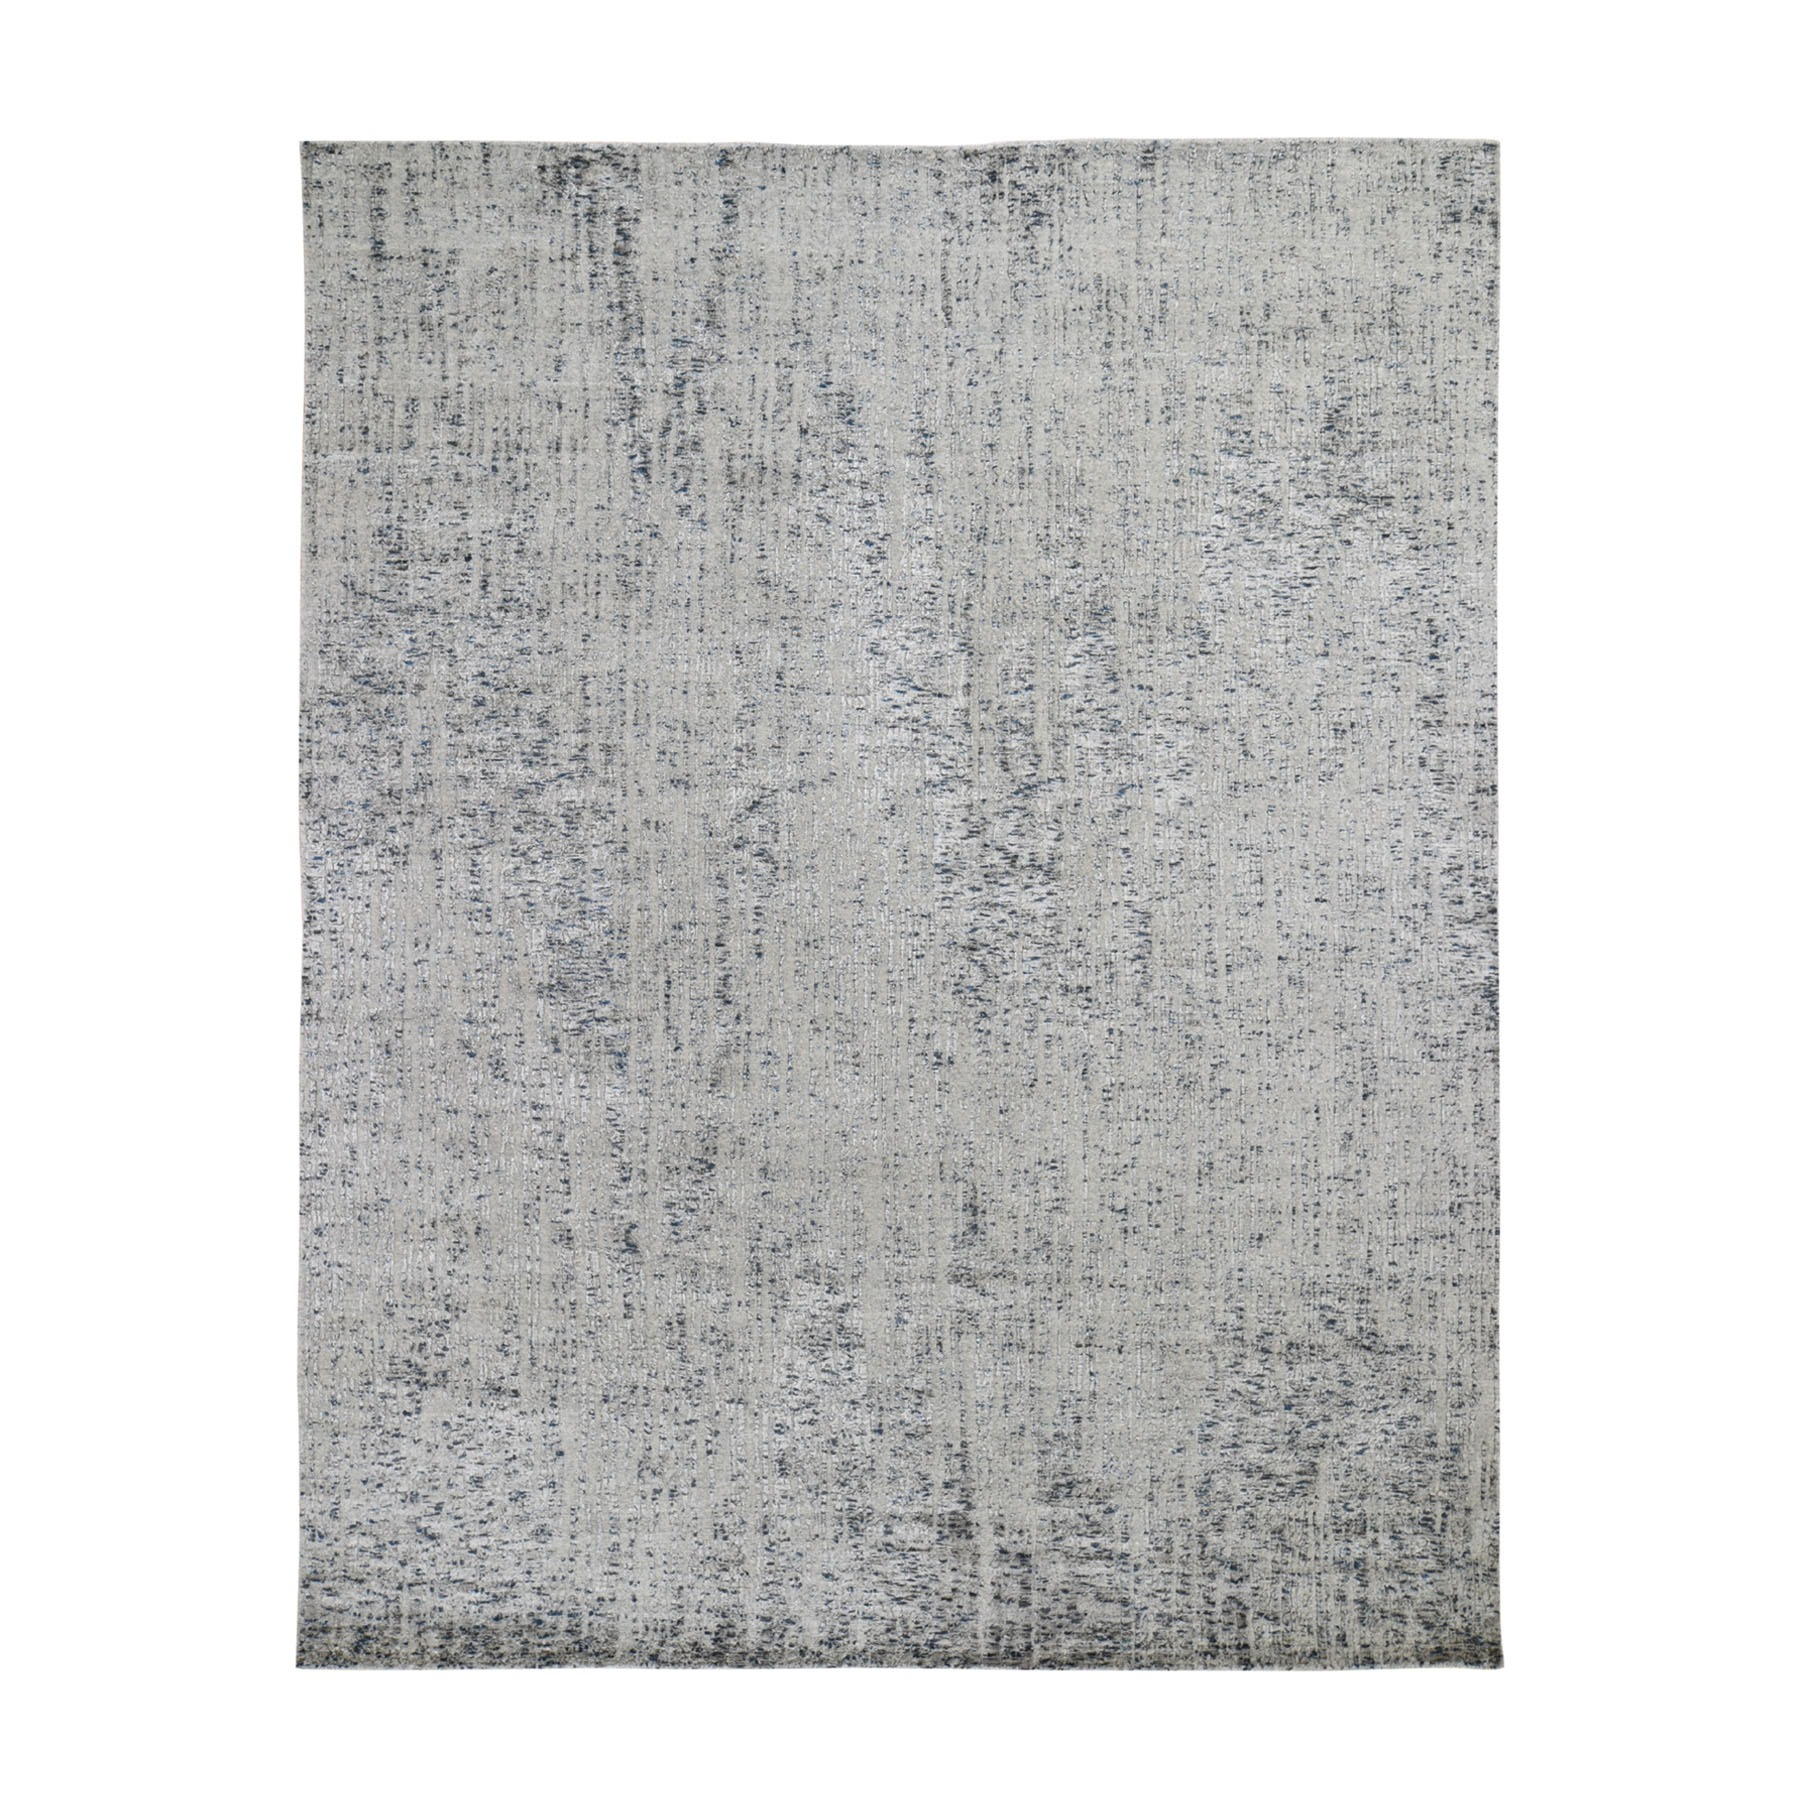 "8'x10"" Gray Fine jacquard Hand-Loomed Modern Wool And Silk Oriental Rug"